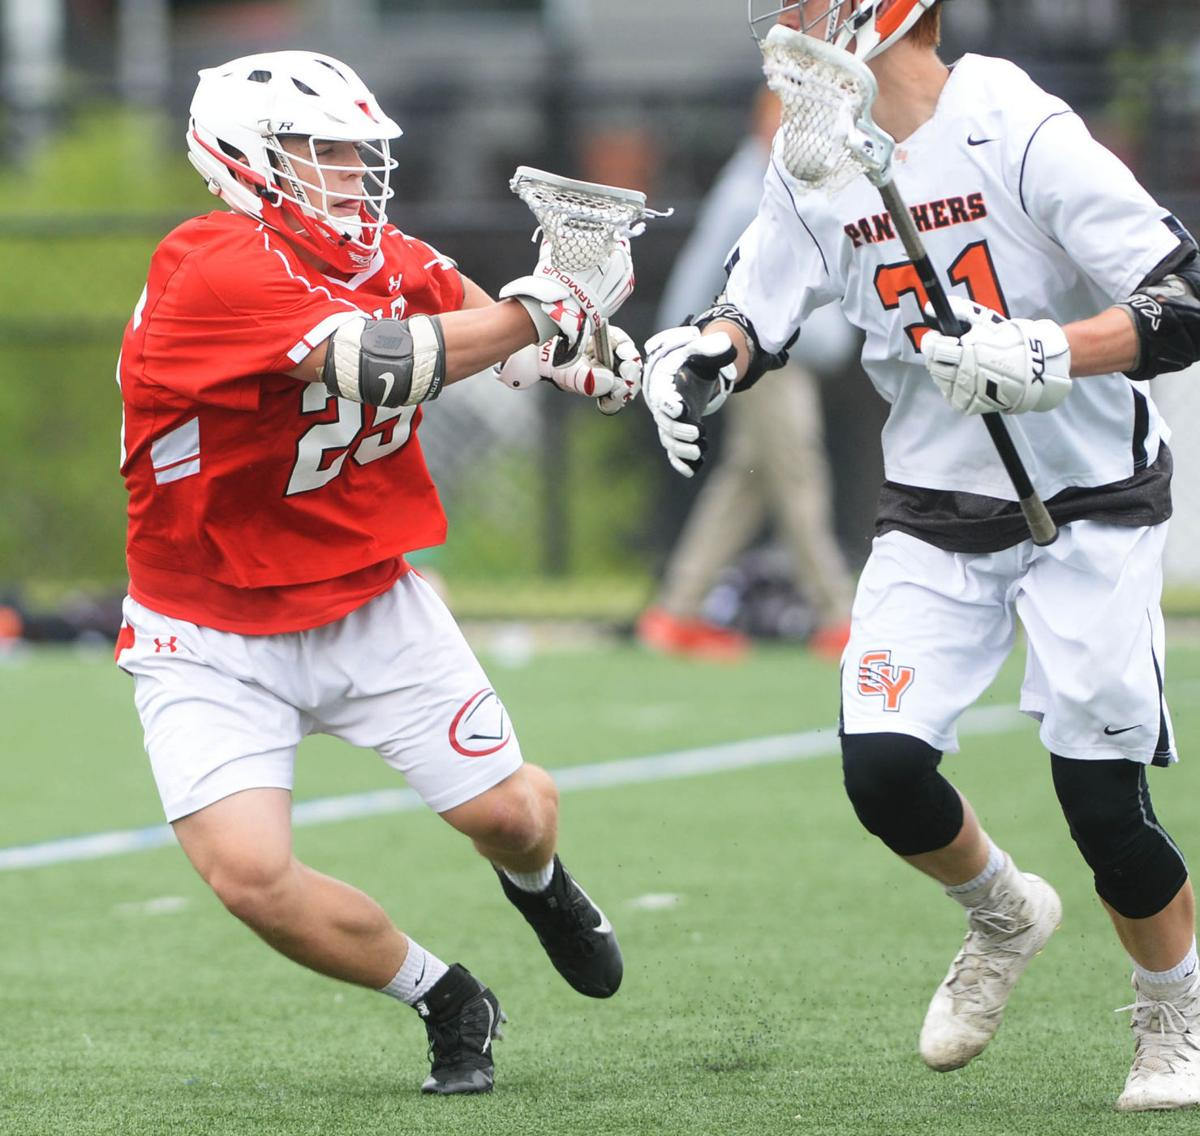 District 3 Boys Lacrosse: Cumberland Valley vs. Central York